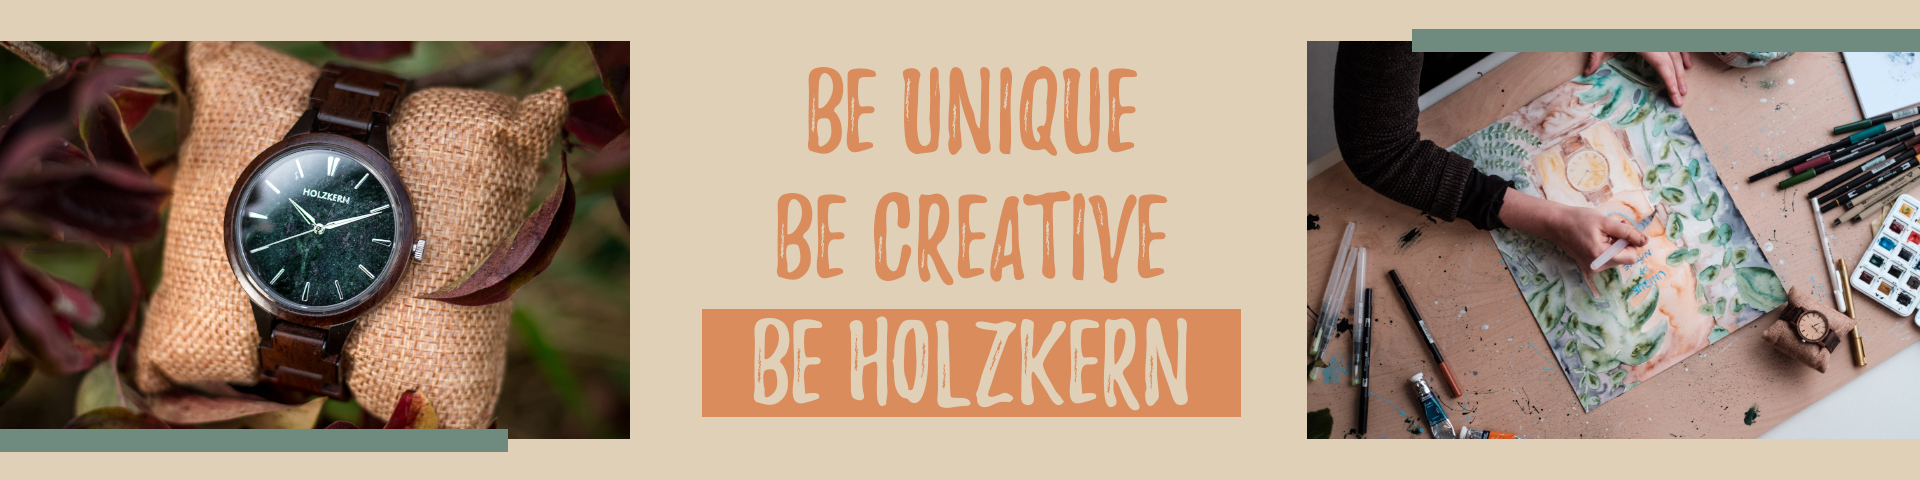 Natural accessories from Holzkern - Discover now